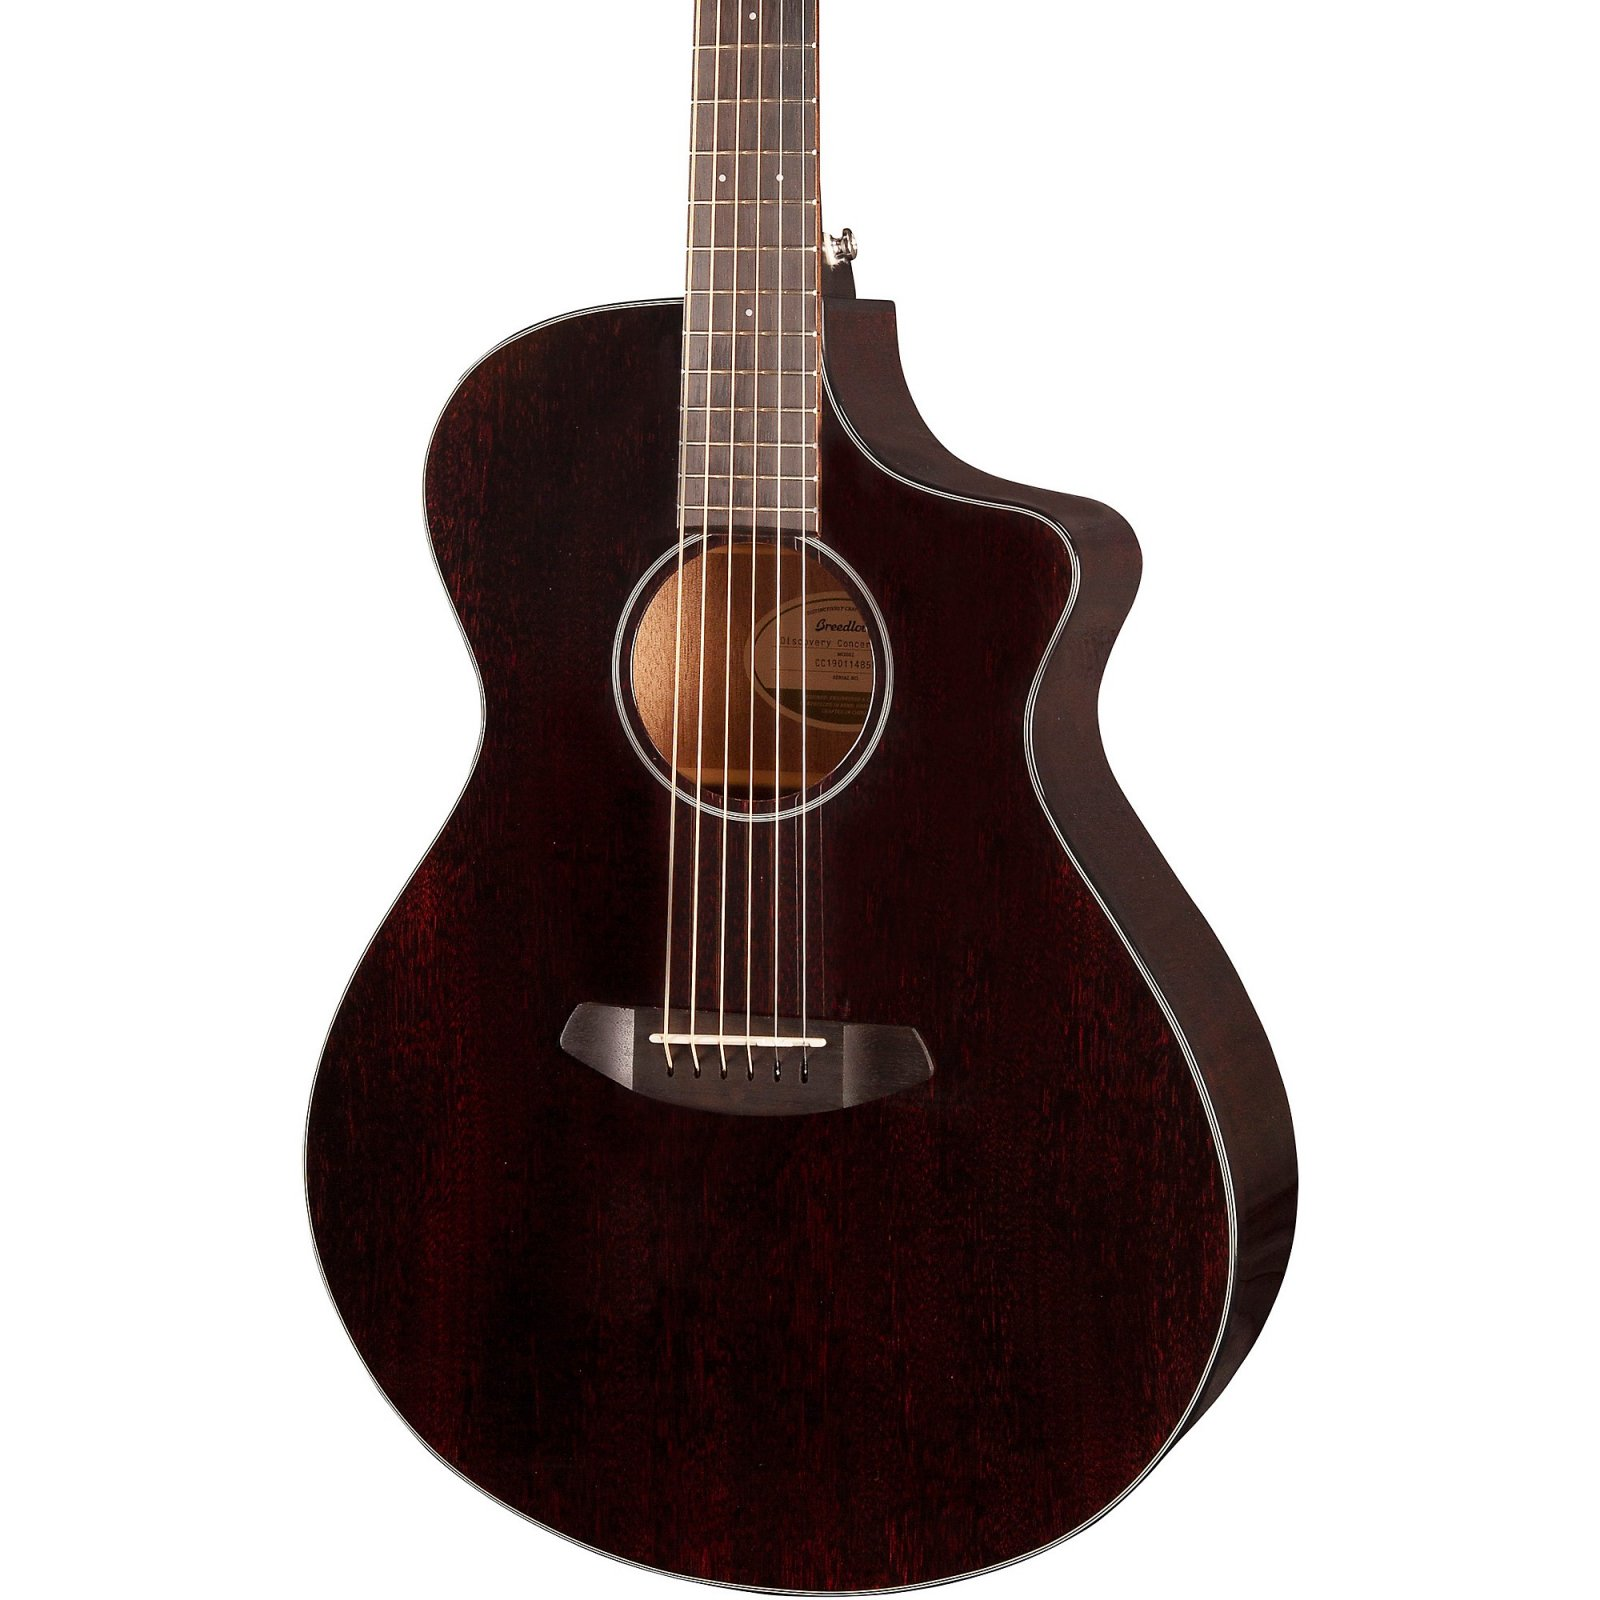 Breedlove Discovery Concert CE Black Widow Acoustic - Electric Guitar